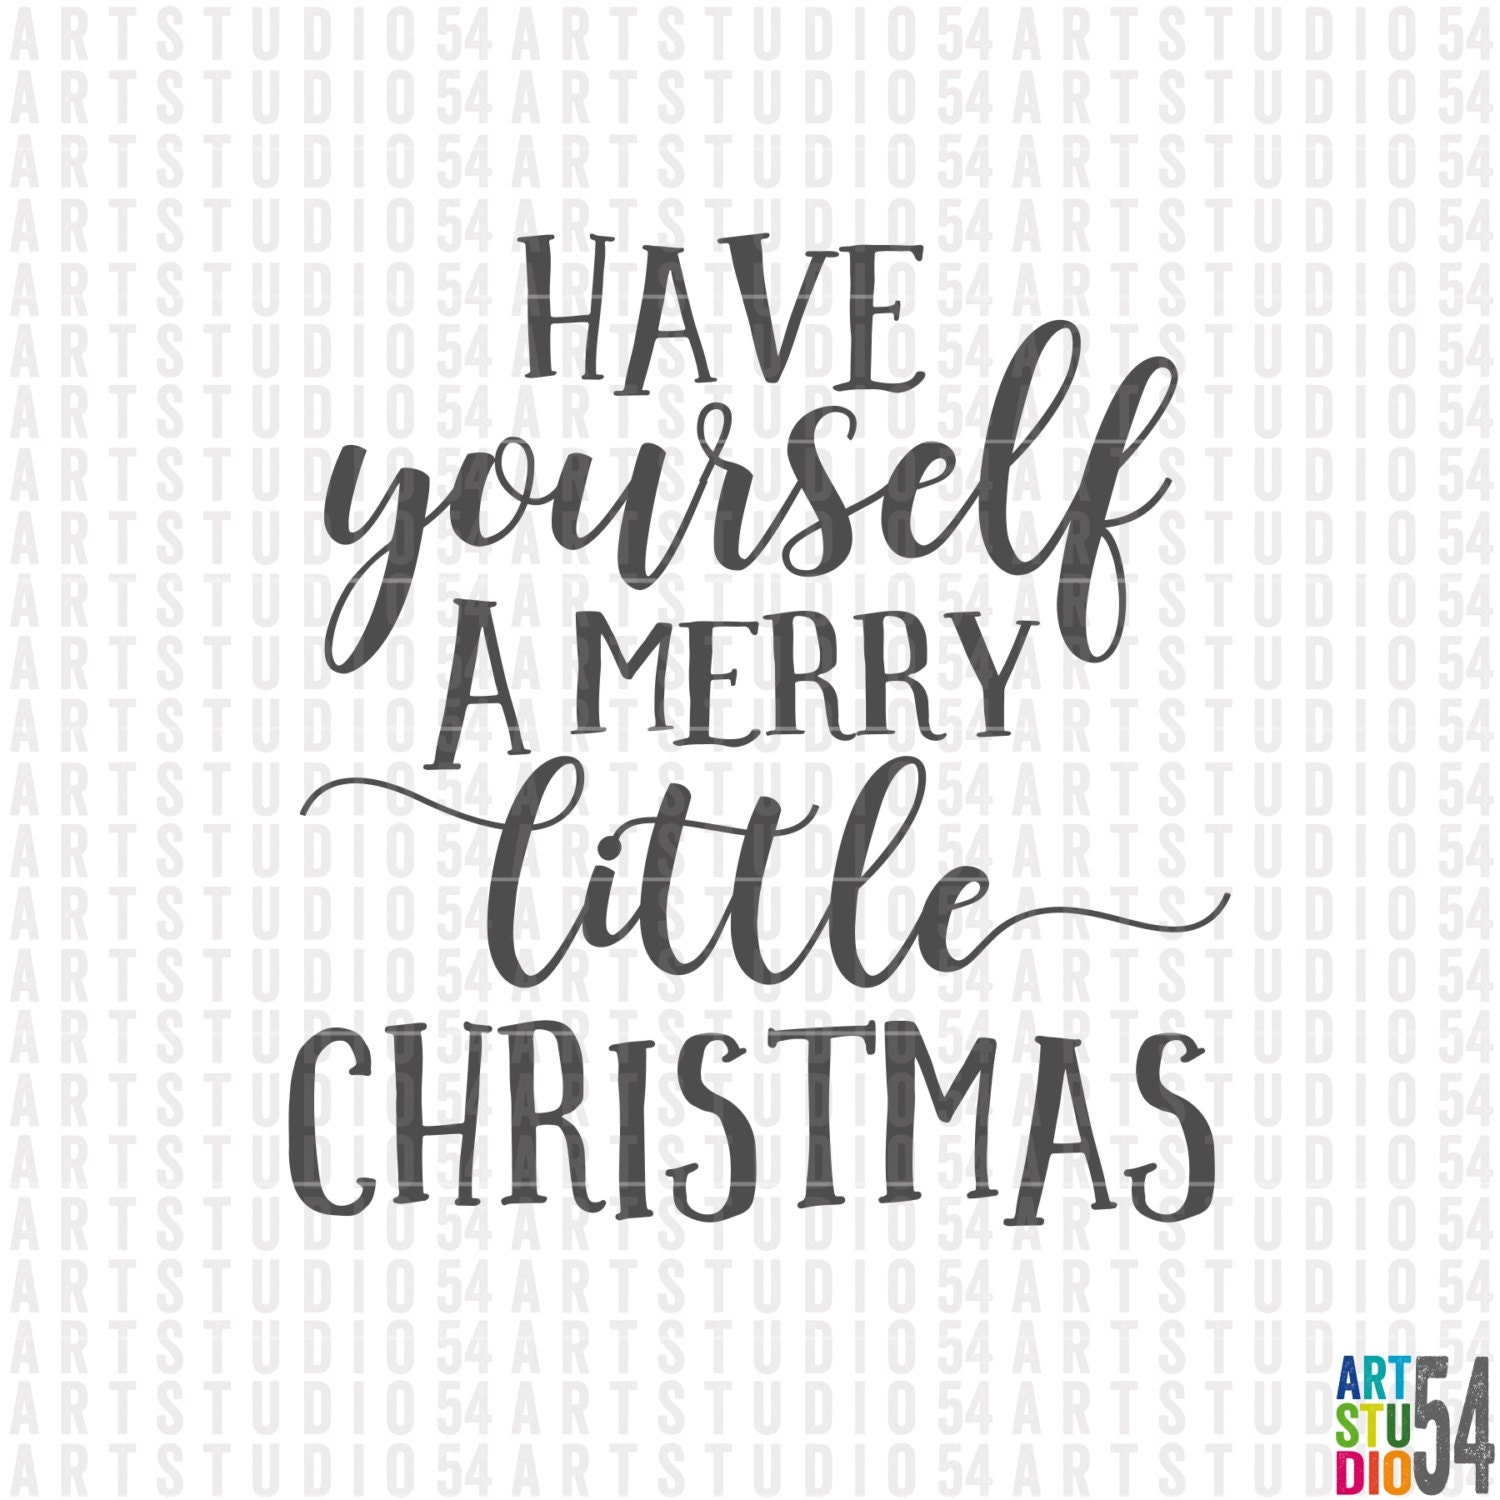 Have Yourself A Merry Little Christmas Svg.Have Yourself A Merry Little Christmas Svg Digital File Clip Art Svg Png Jpg Personal And Commercial Use Artstudio54